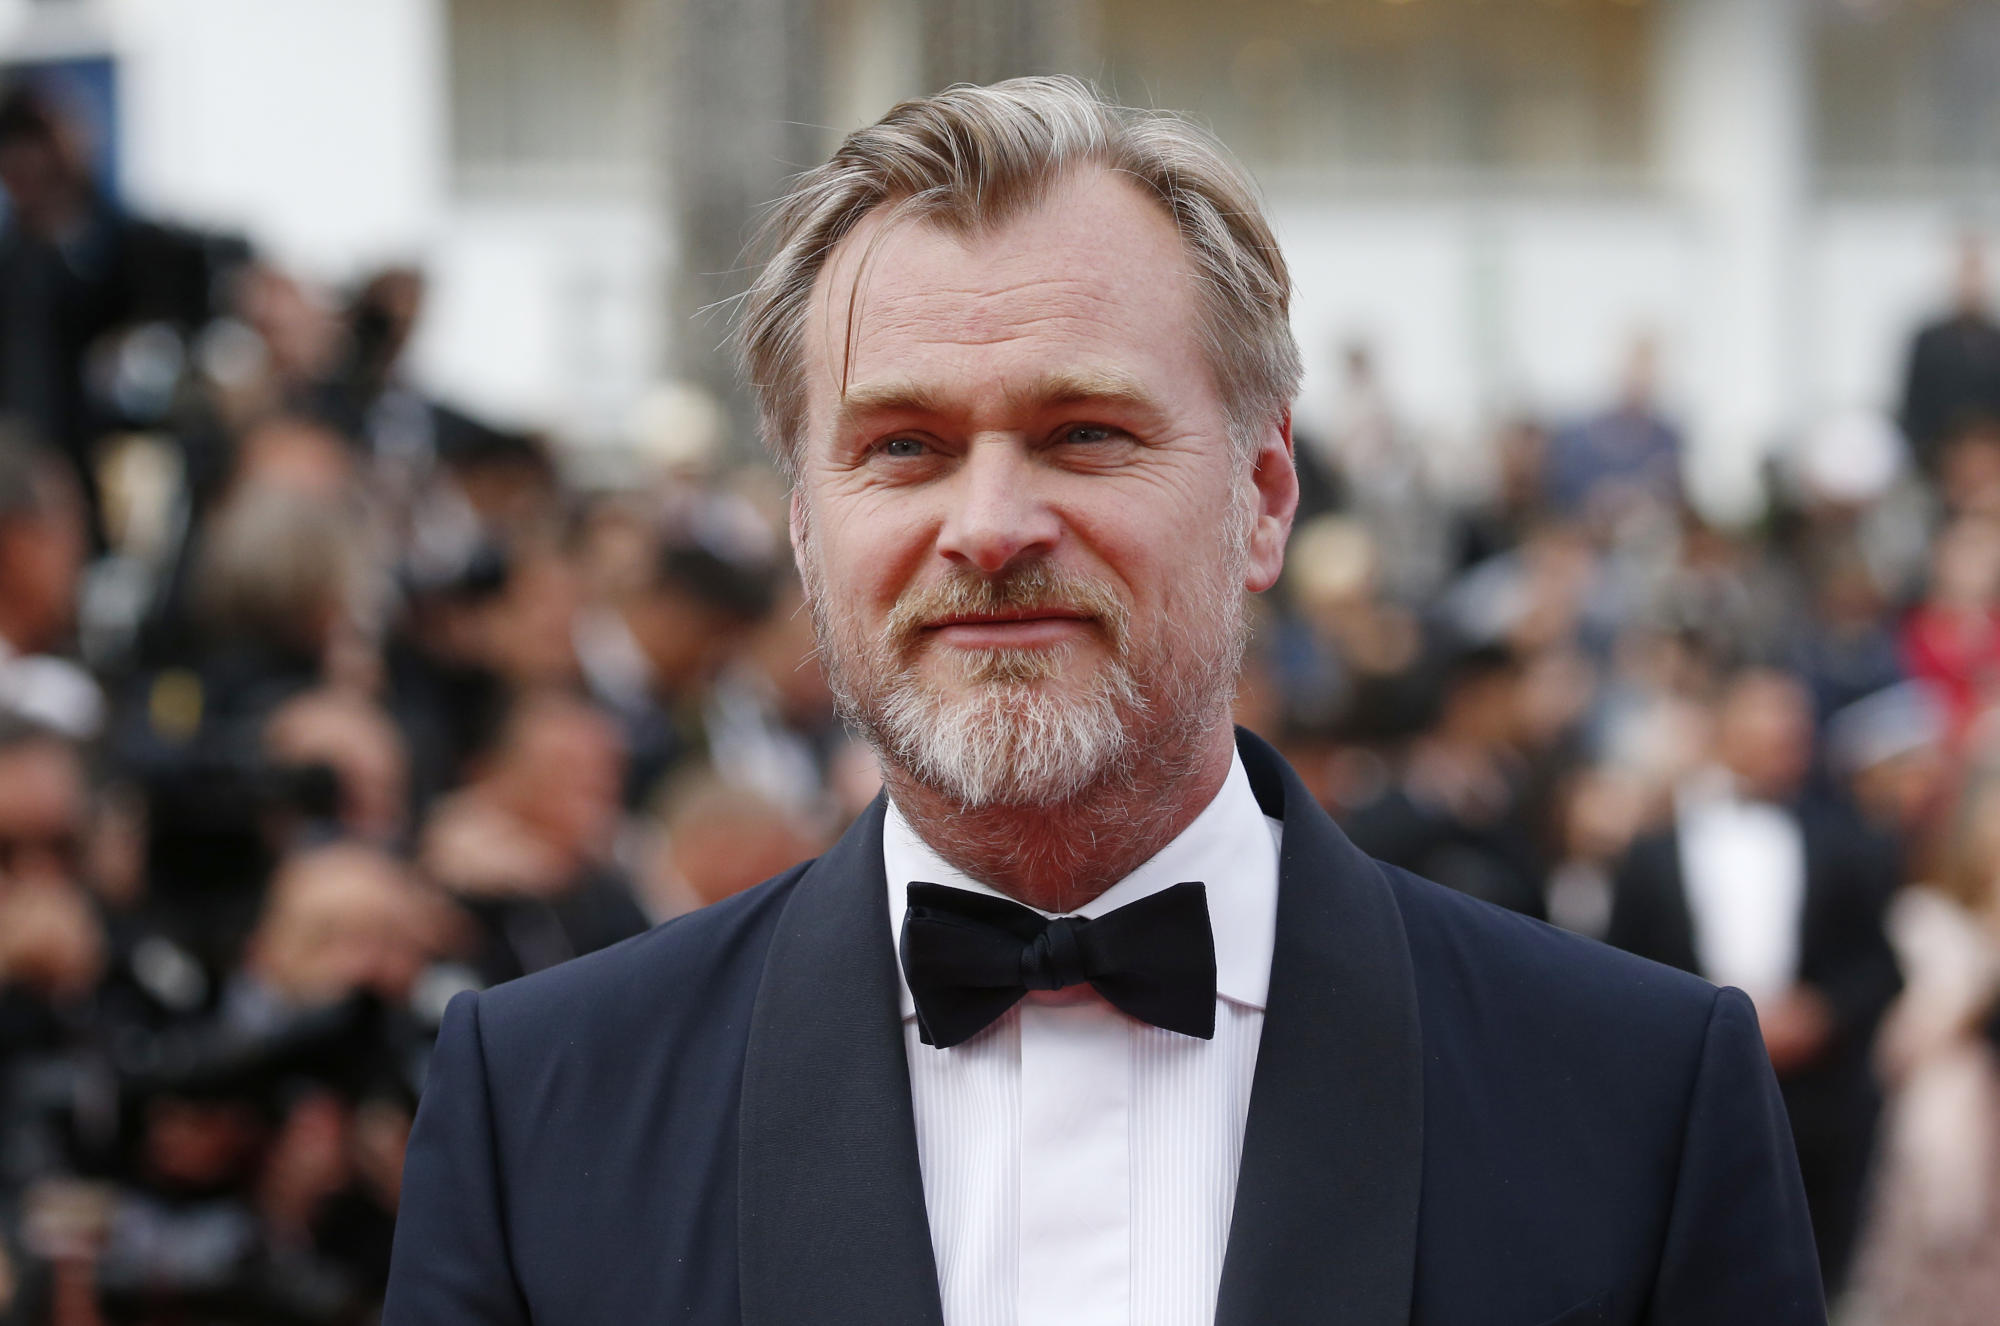 Christopher Nolan will reportedly not work with Warner Bros again